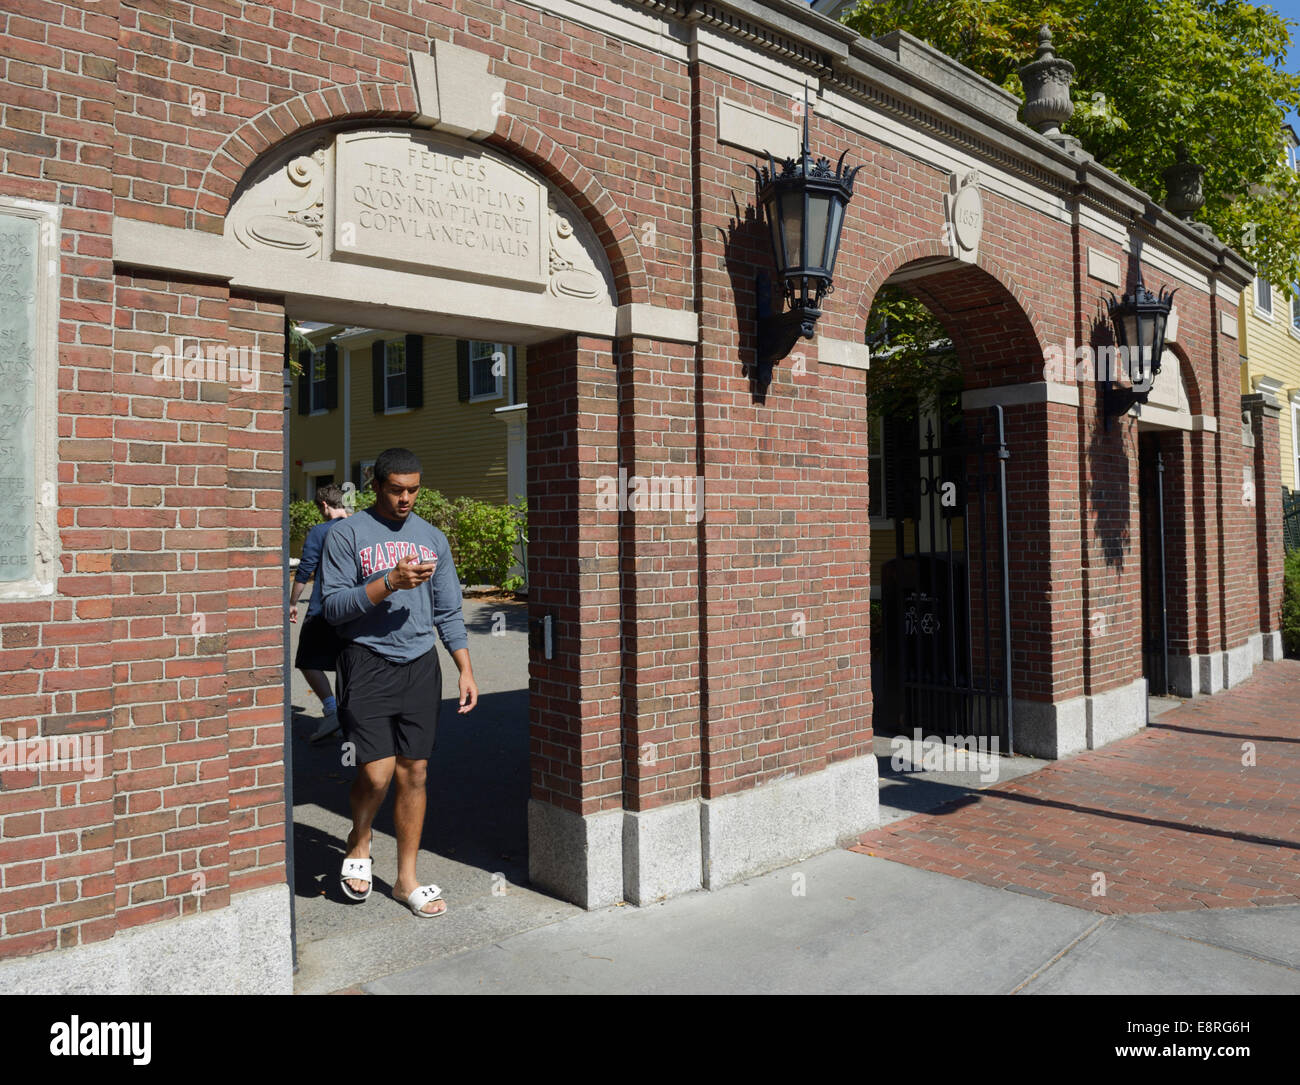 Entrance gates to Harvard College/Harvard University - Stock Image